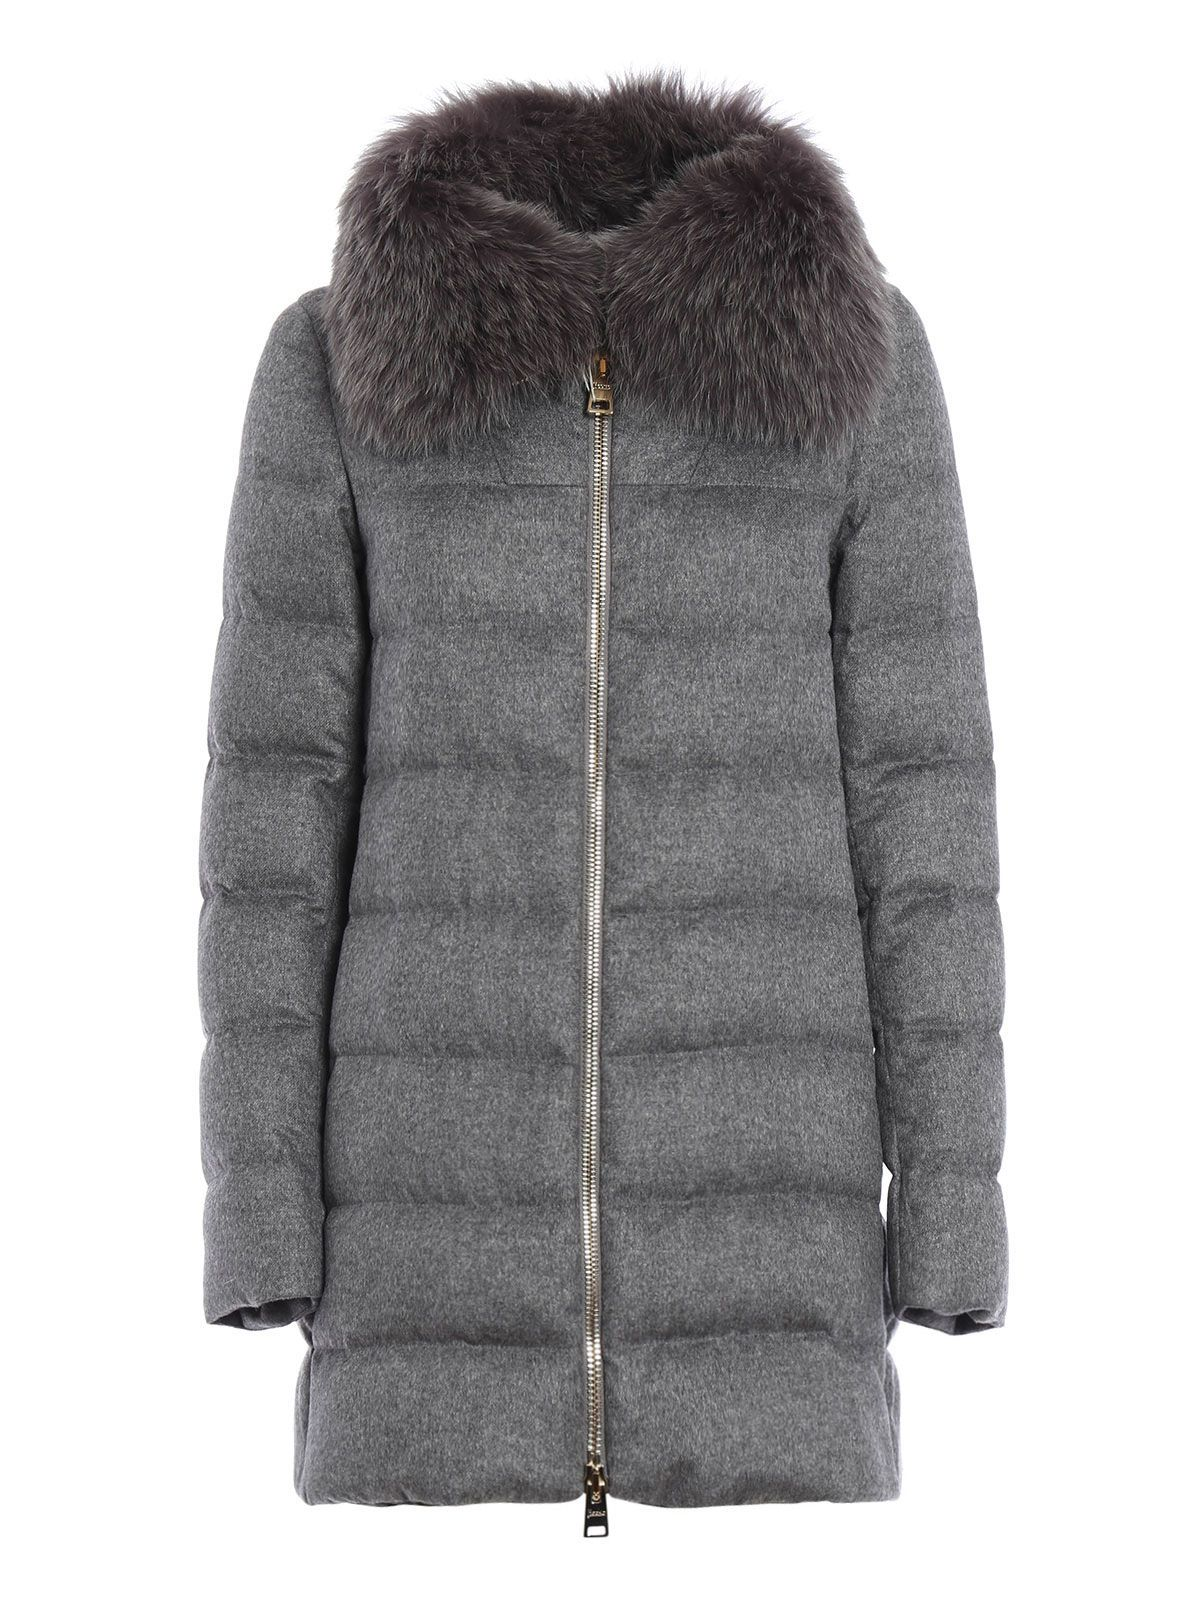 Black Canada Goose fur-trimmed hooded down coat with four pockets and zip featuring Velcro closures at front. Unfortunately, due to restrictions, this item cannot be shipped internationally.